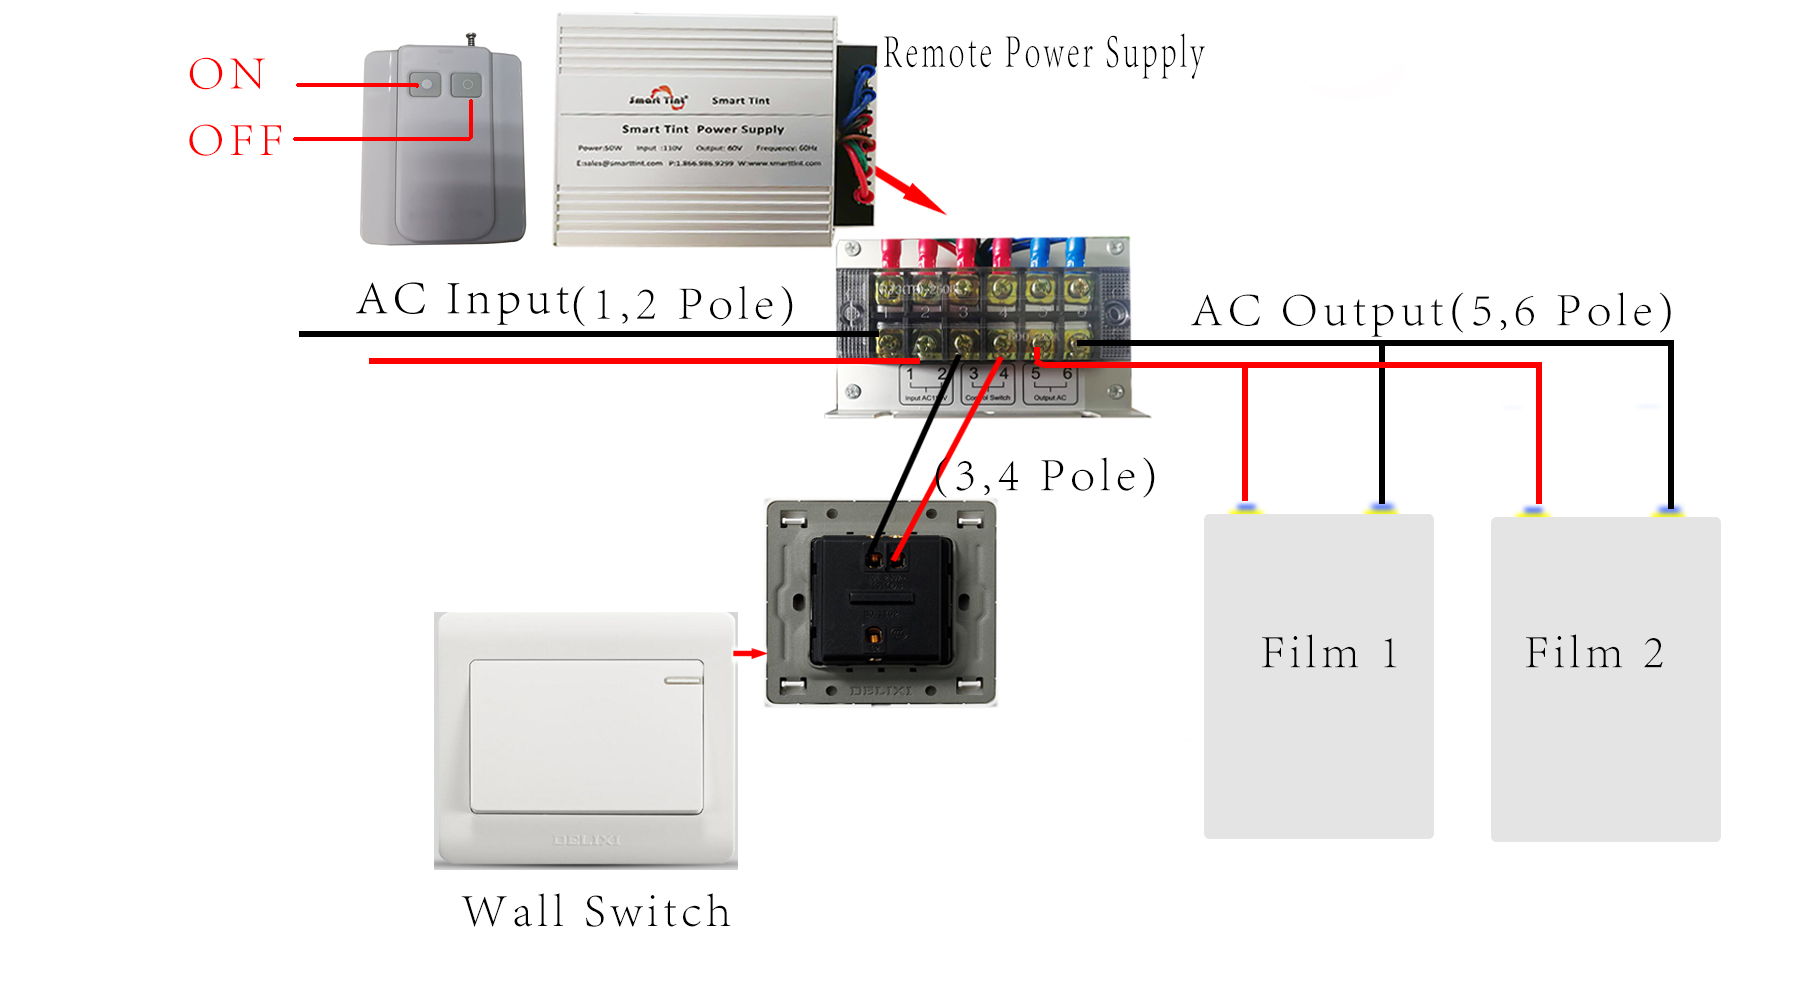 1 but also has a dry contact switch design to hook up to and 3rd party control system for simple on/off functionality. All that is required is to connect your dry contact switch relay to the controller to operate. You can also use the standard 2 pole switch that is provided to operate and also includes a rf remote control.